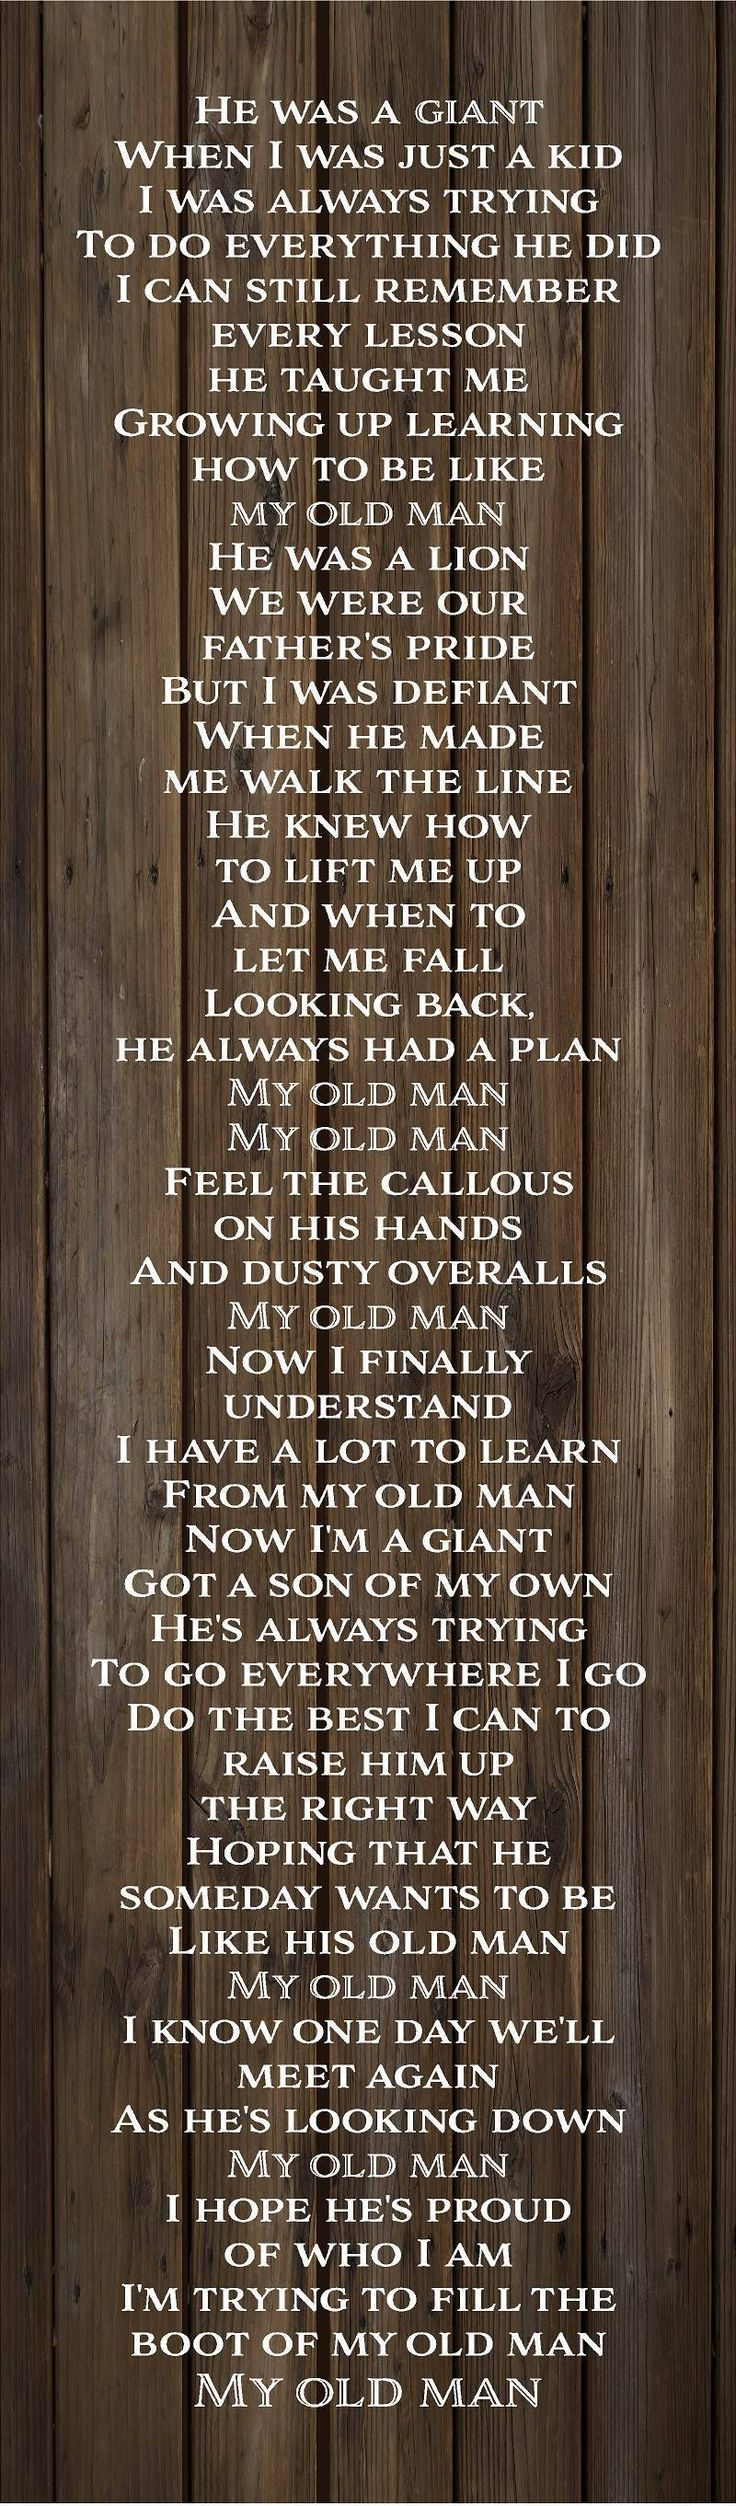 Father's Day Gift - My Old Man Lyrics Zac Brown Band Wood Sign, Canvas Wall Art - Christmas, Sympathy by HeartlandSigns on Etsy